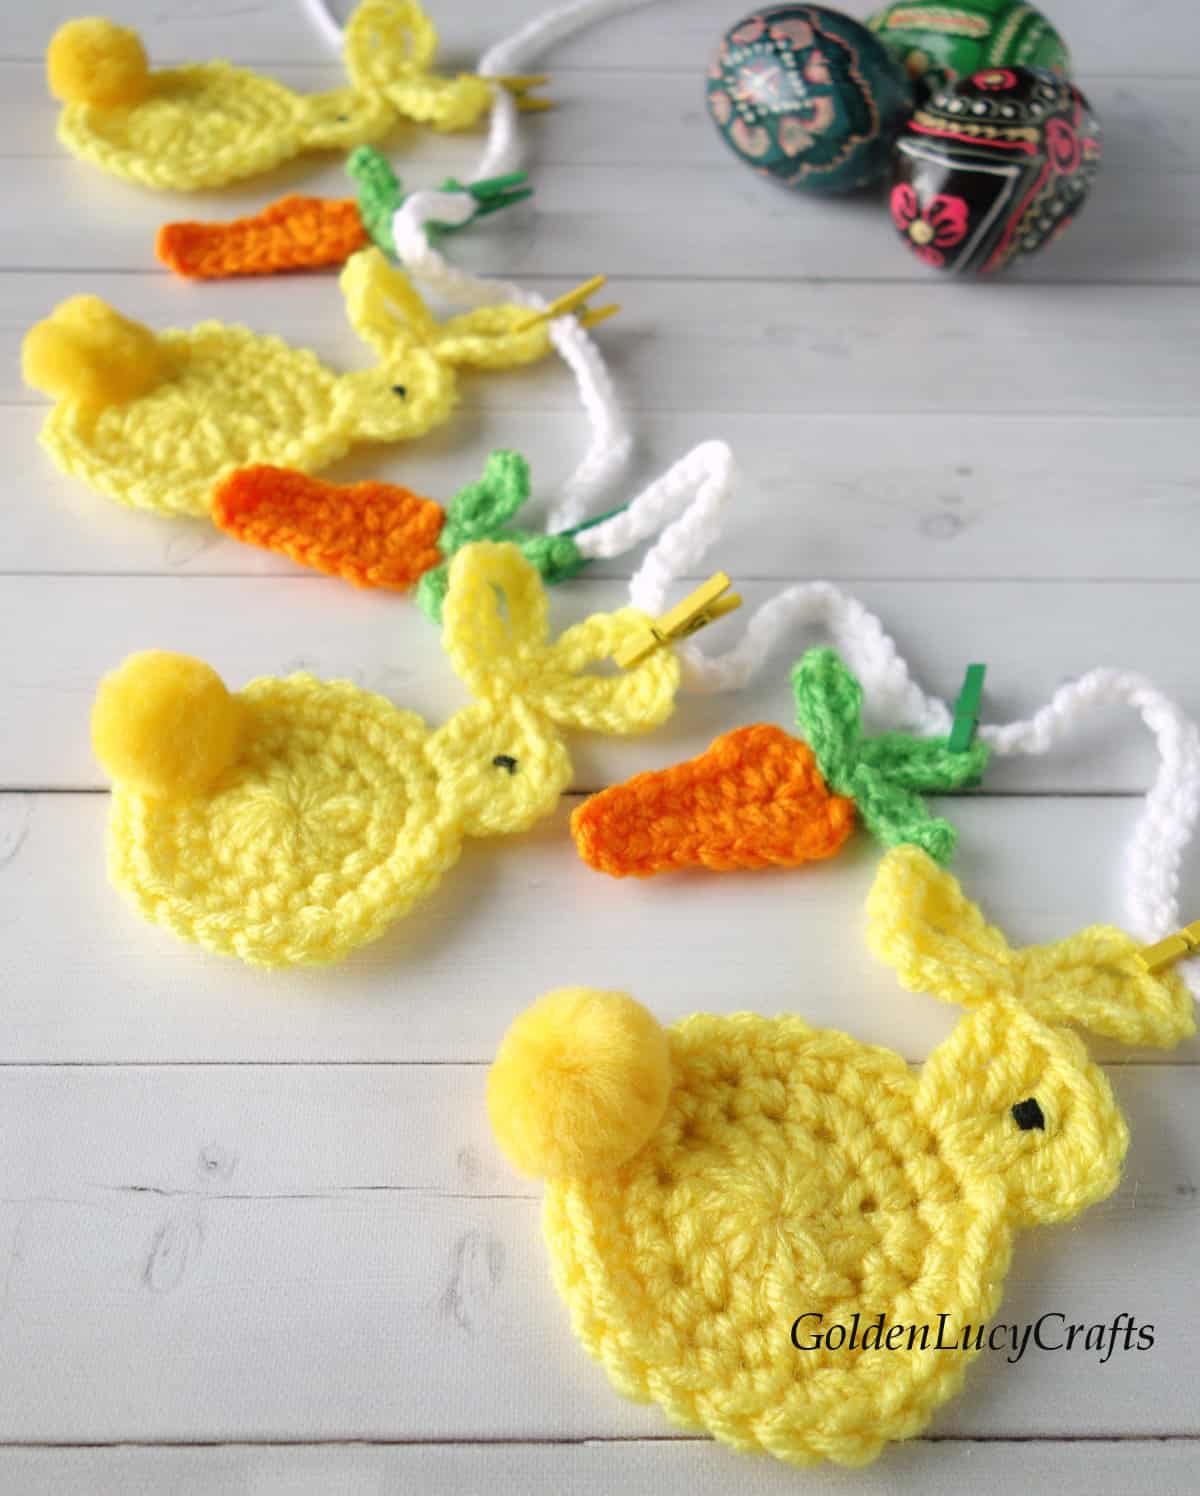 Crocheted Easter garland with bunnies and carrots close up picture, painted Easter eggs in the background.